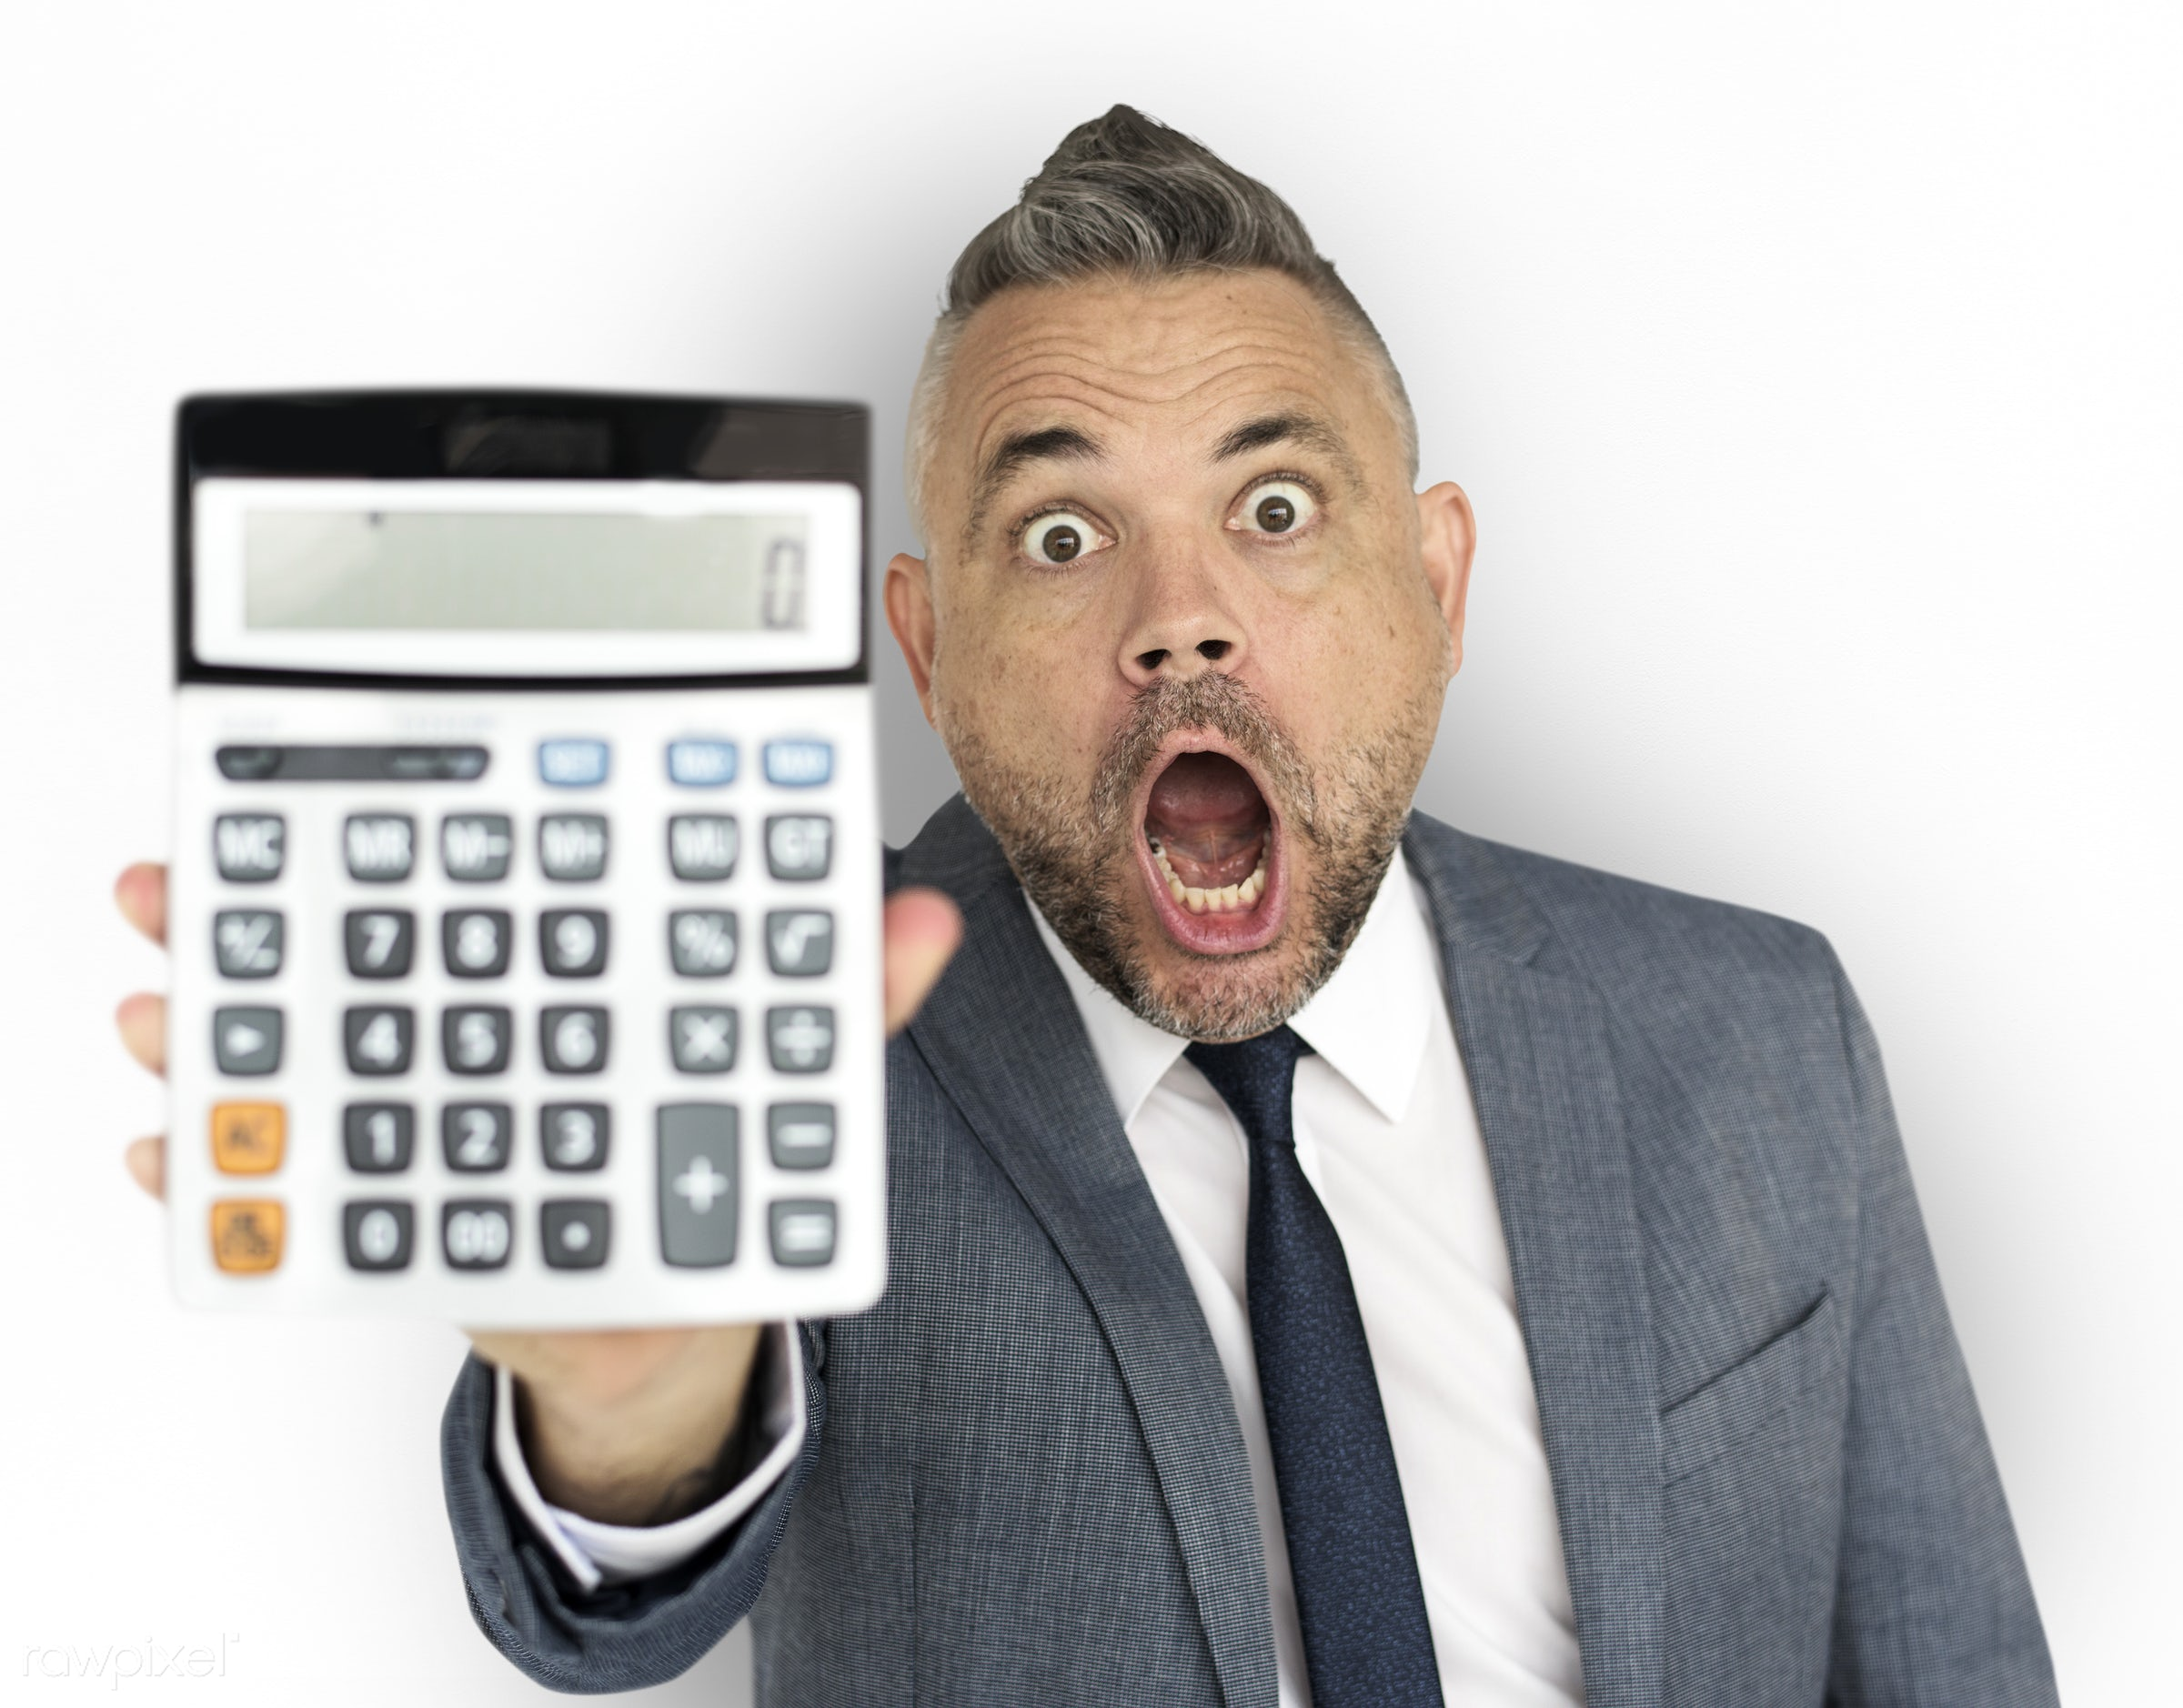 expression, studio, bookkeeping, model, person, manager, shocking, investor, race, people, calculation, businessman, style,...